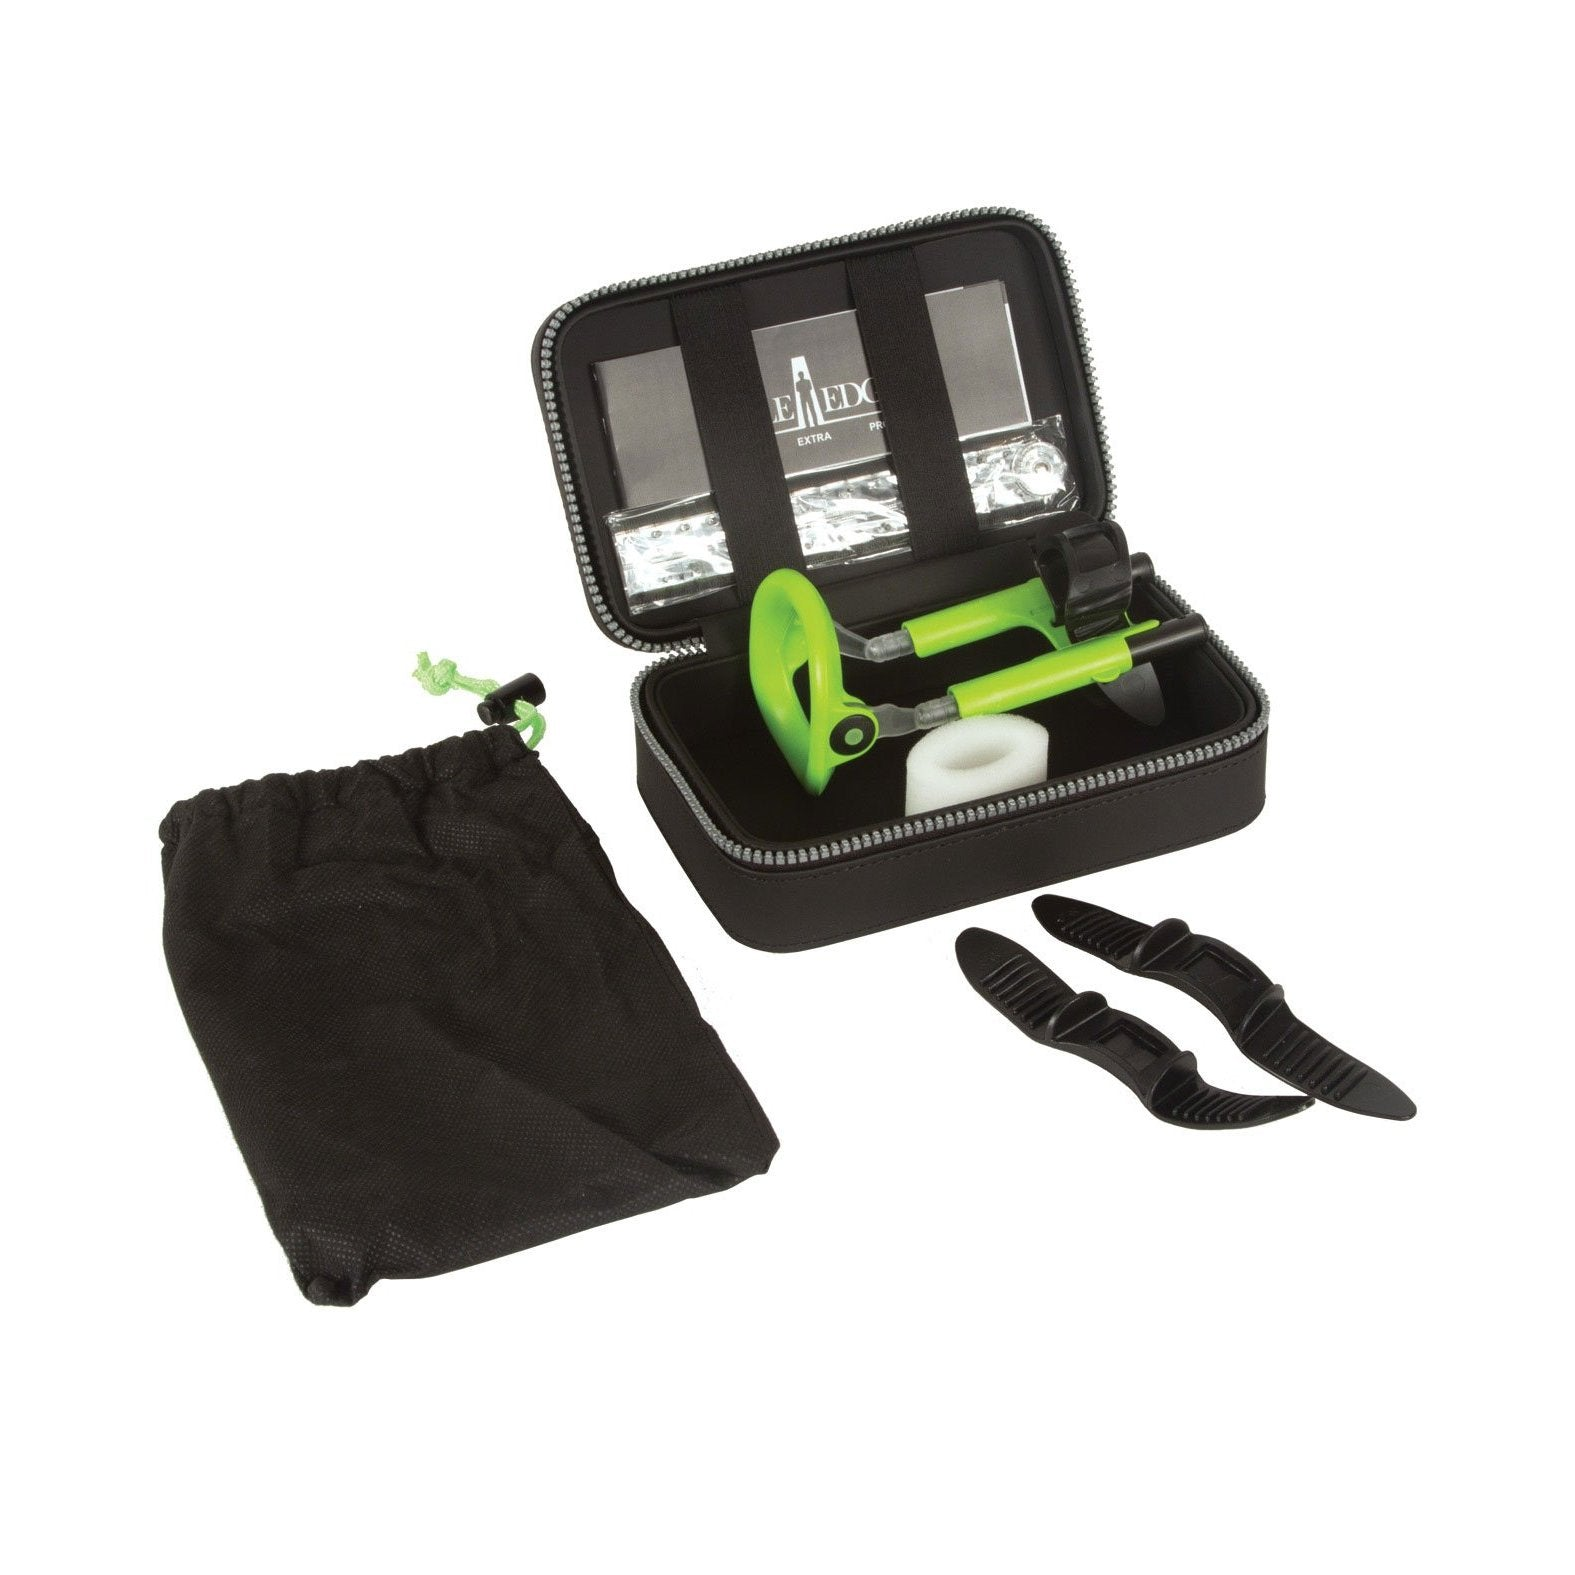 Male Edge Extra Penis Enlarger Kit - Gay Men's Sex Toys - Adam's Toy Box